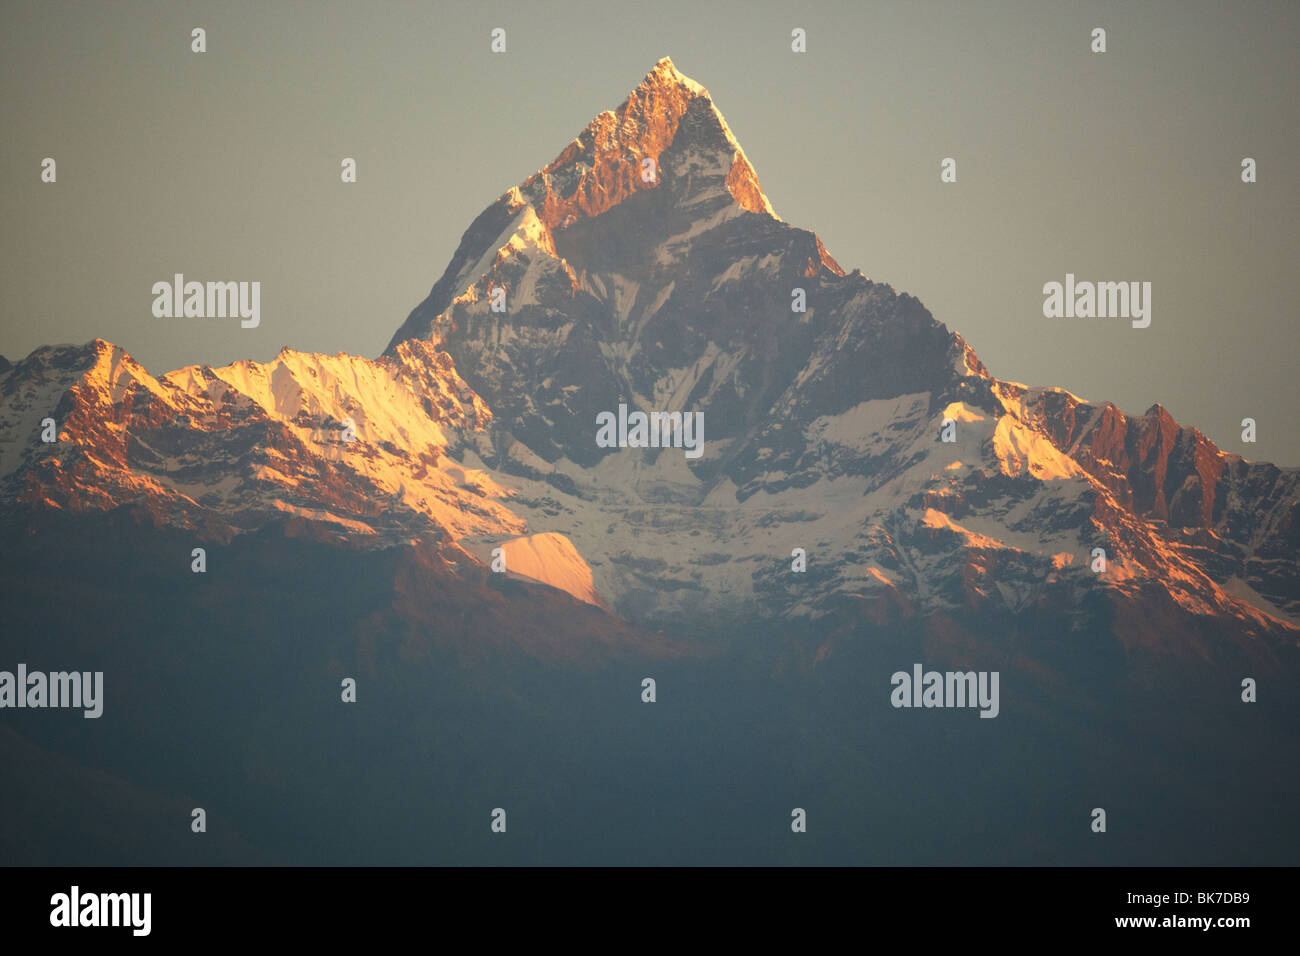 Fishtail mountain at sunrise near Pokhara, Nepal on Tuesday October 27, 2009. - Stock Image